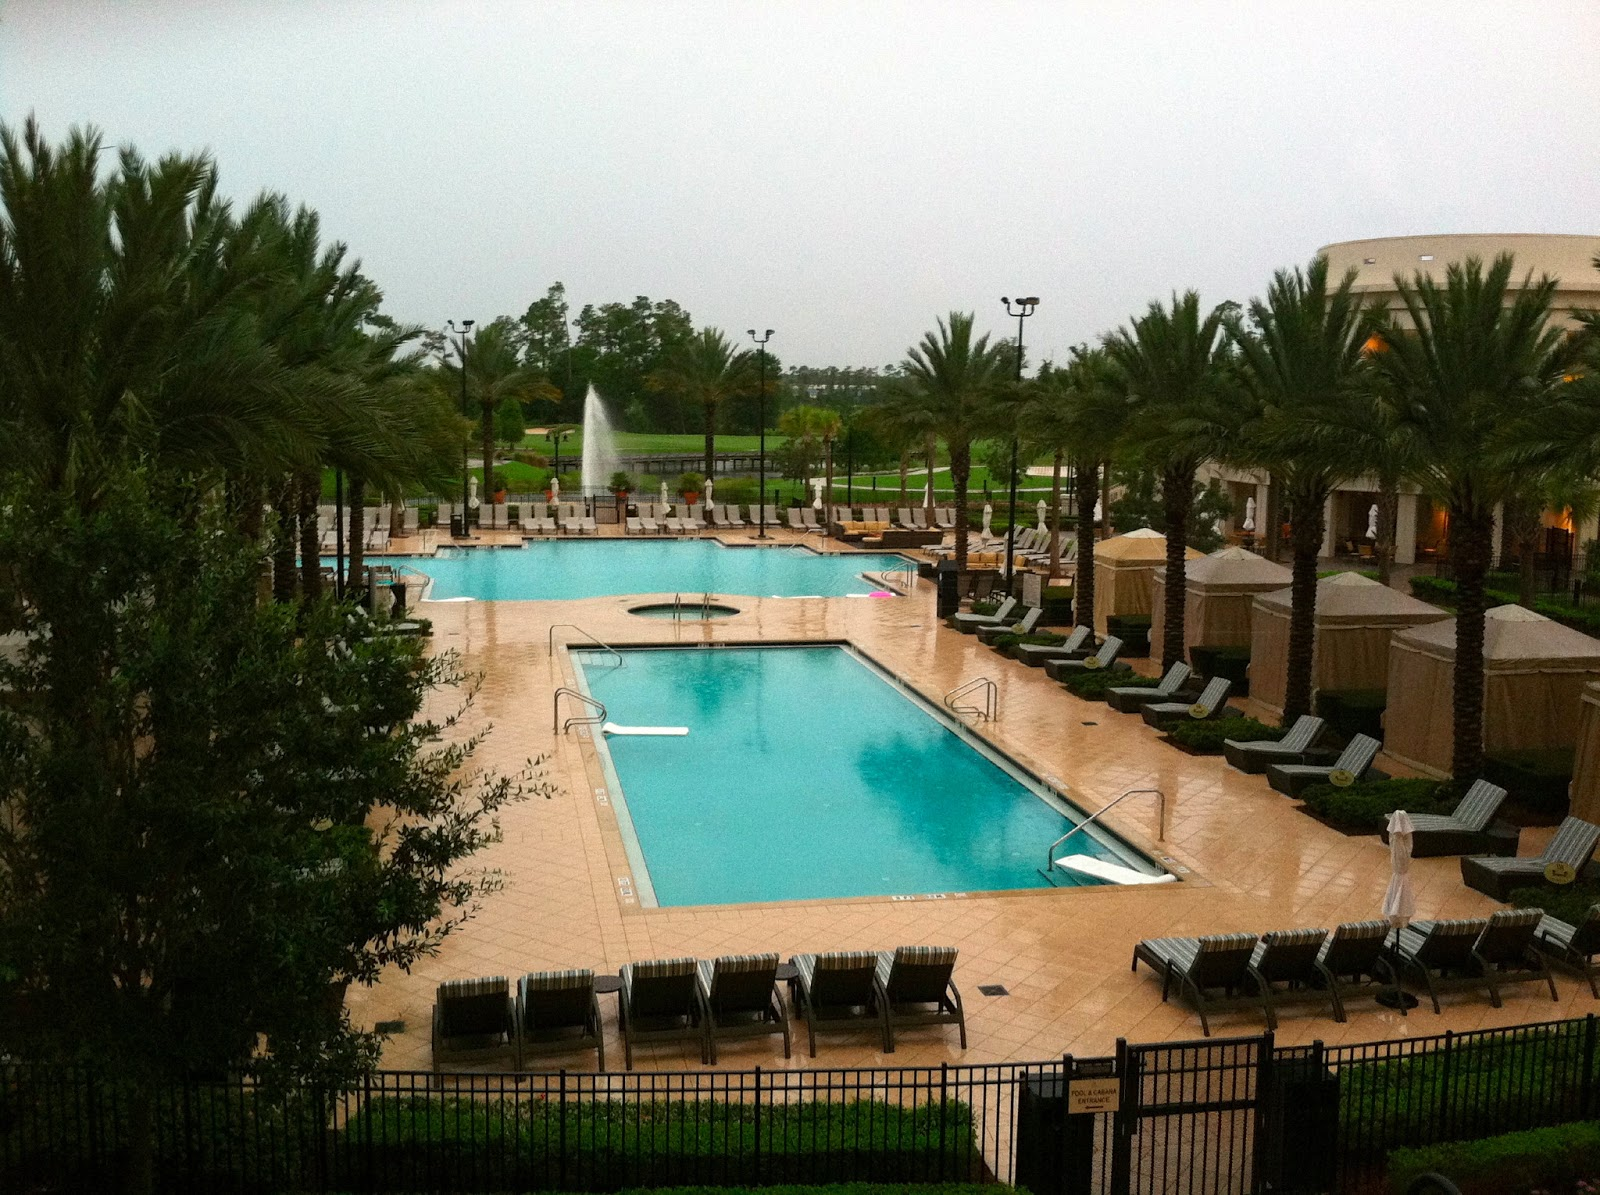 Waldorf Astoria Orlando Pool